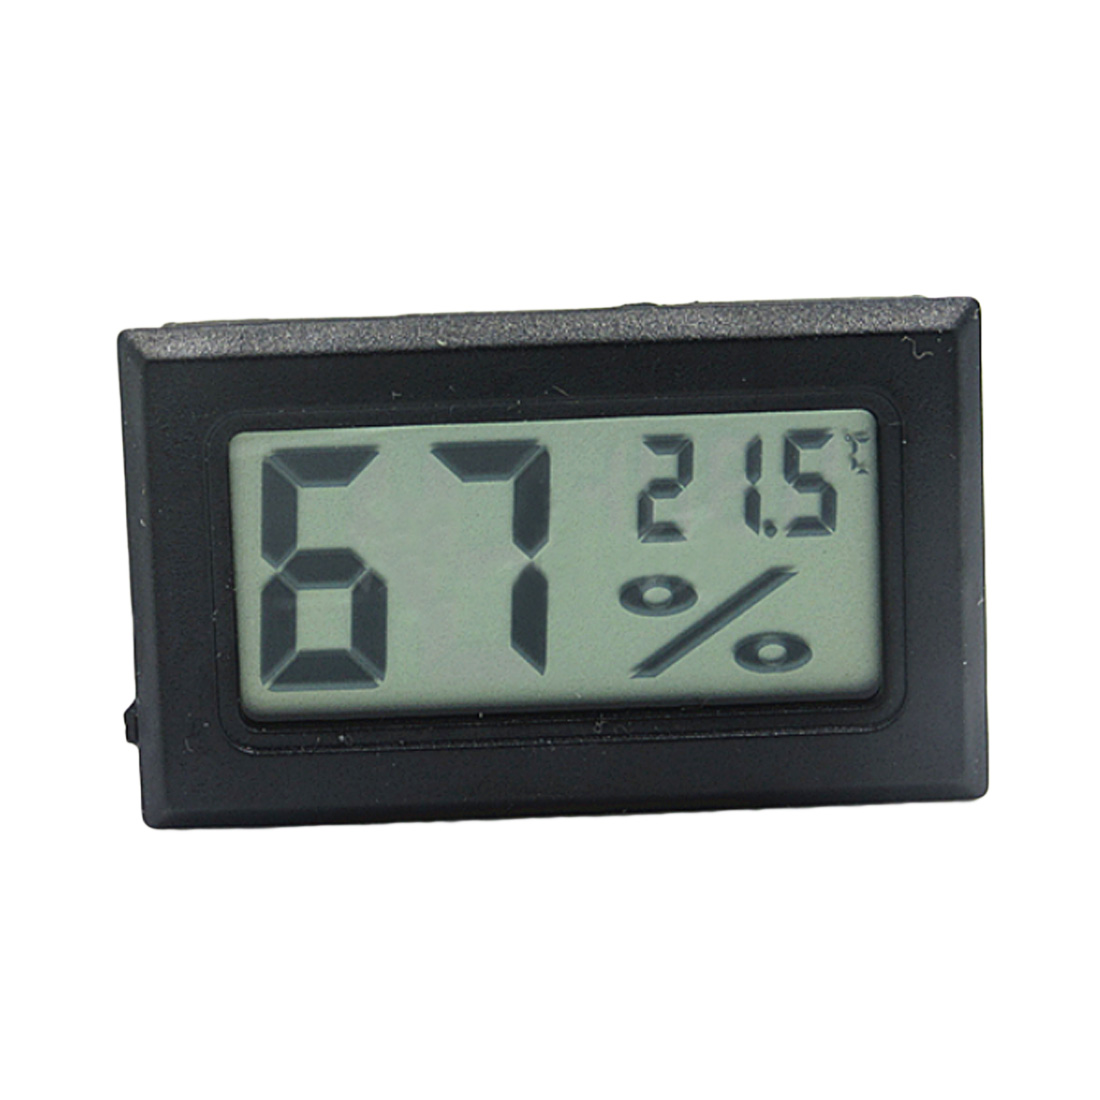 1 PCS Mini LCD Digital Thermometer Hygrometer Temperature Indoor Convenient Temperature Sensor Humidity Meter Gauge Instruments леша свик 2019 11 30t20 00